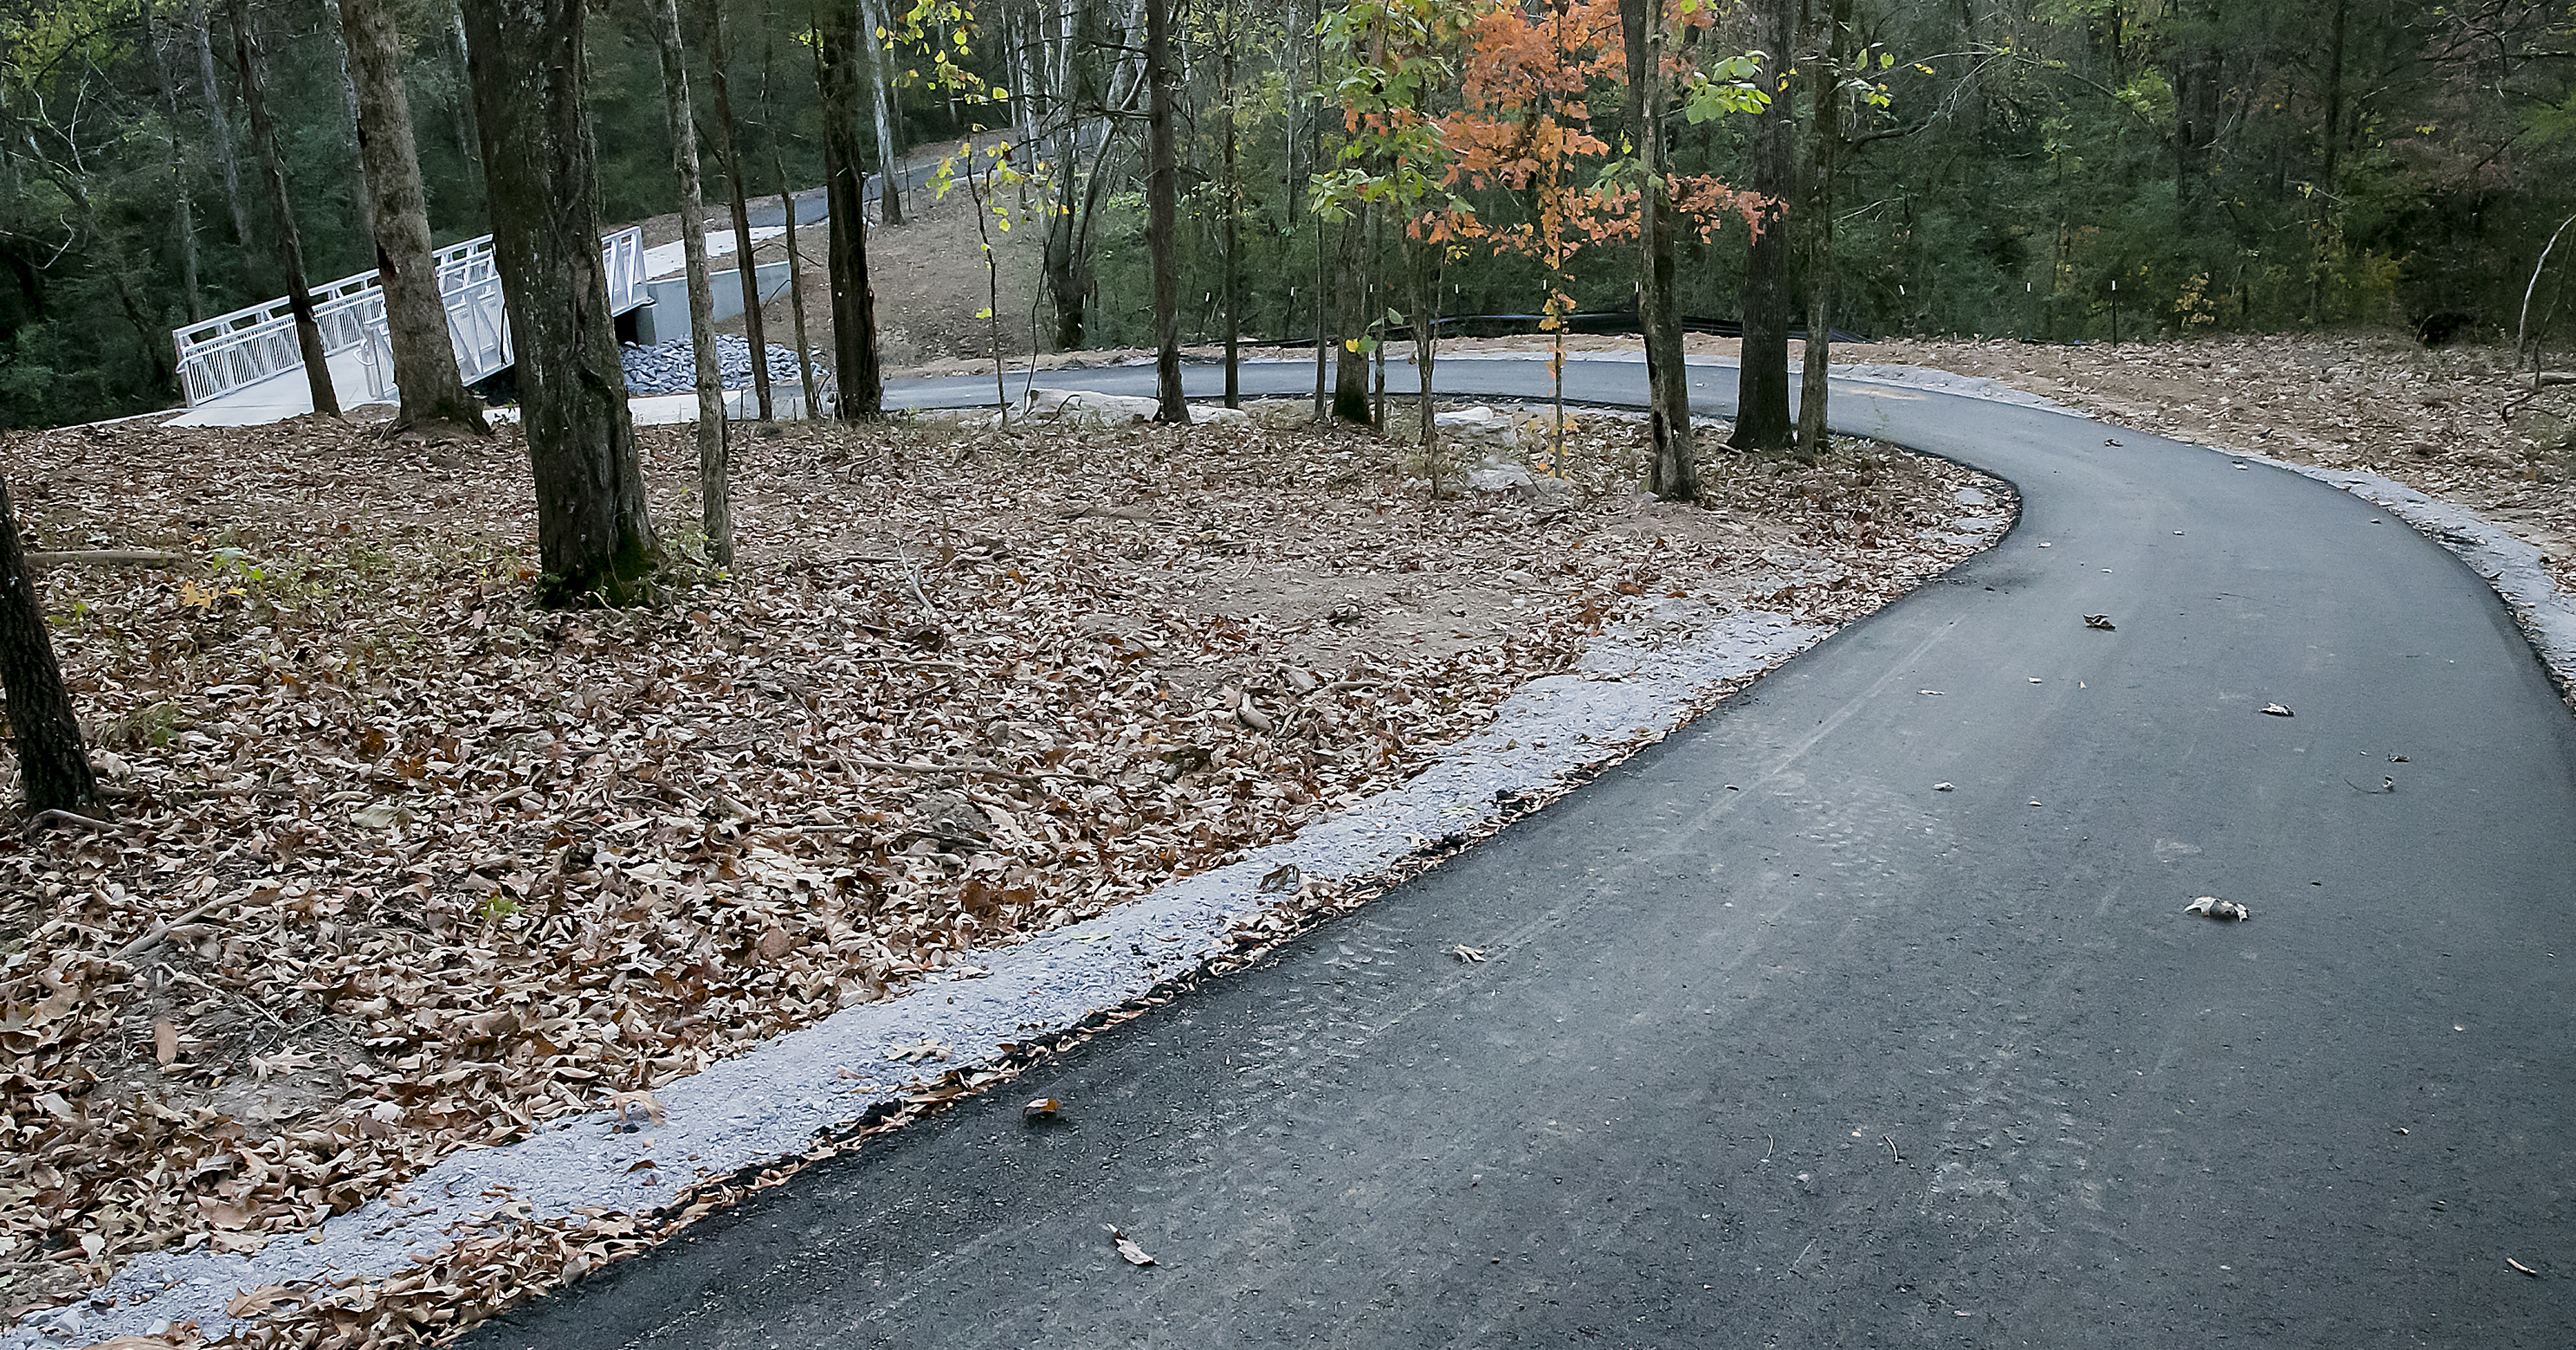 A new section of the Greenway trails in Murfreesboro is now open